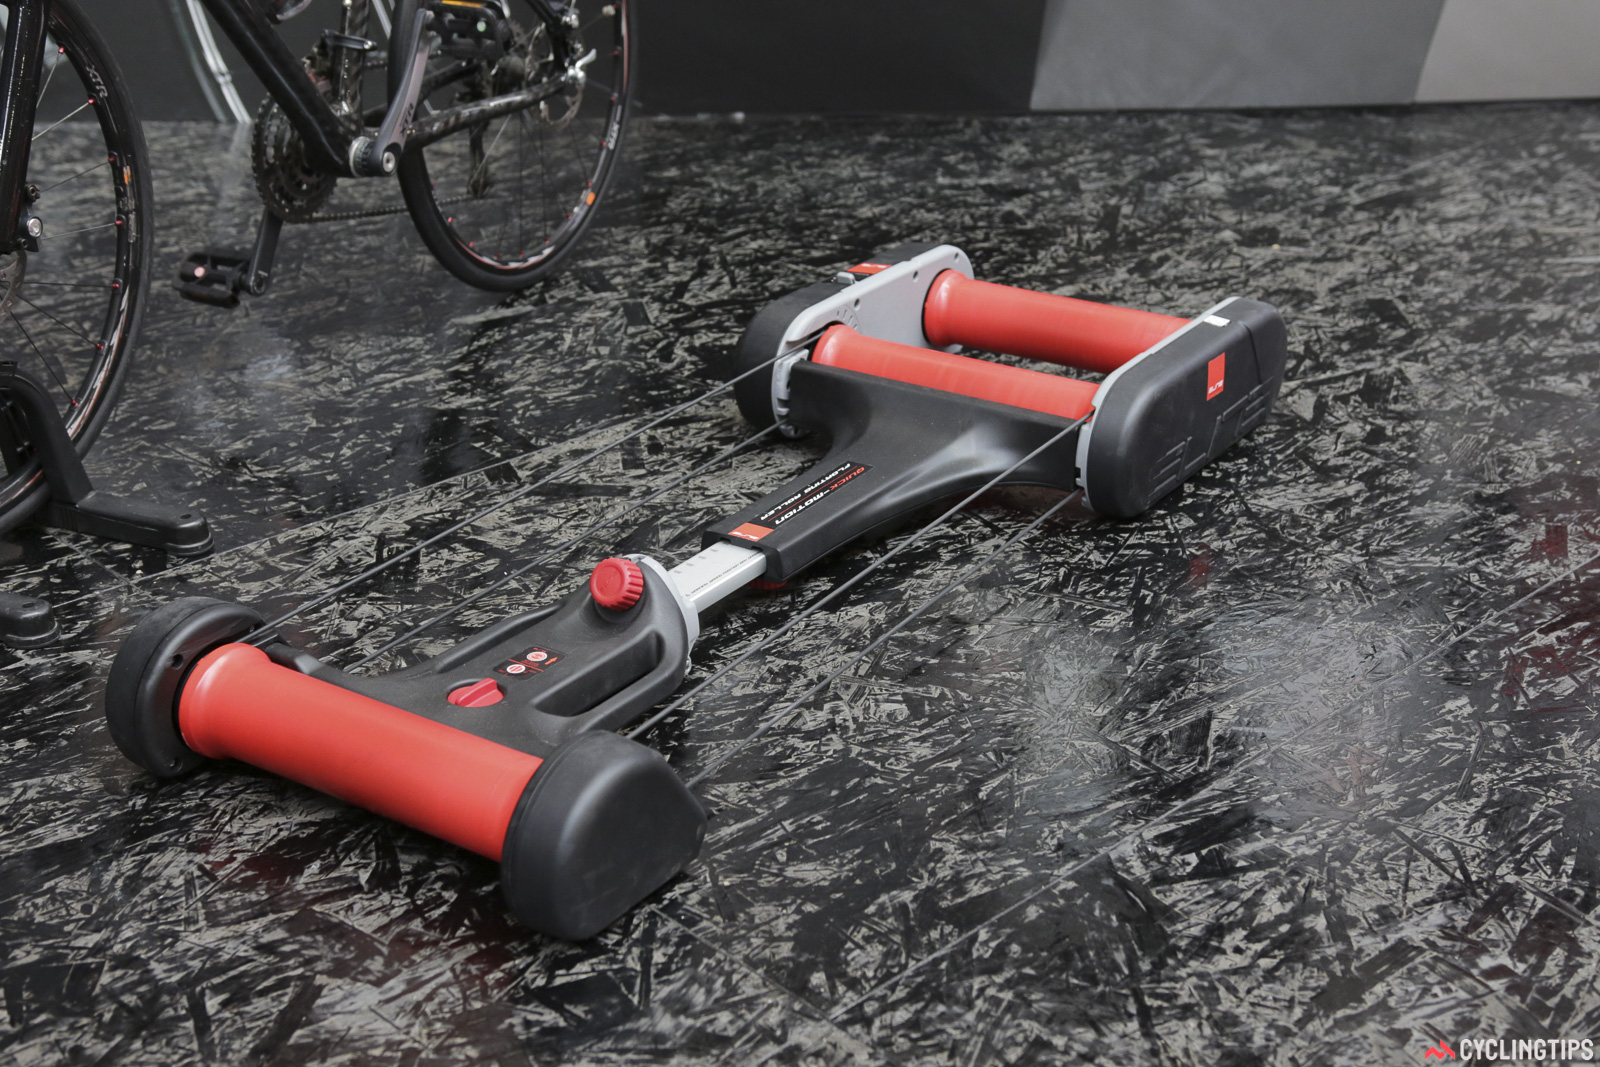 Winner of a EuroBike award, the Elite Quick Motion floating roller sure looks space-age. The floating nature is said to provide a more realistic feel, but also aid in balance. It fold in three parts for easy storage too. Photo: David Rome.